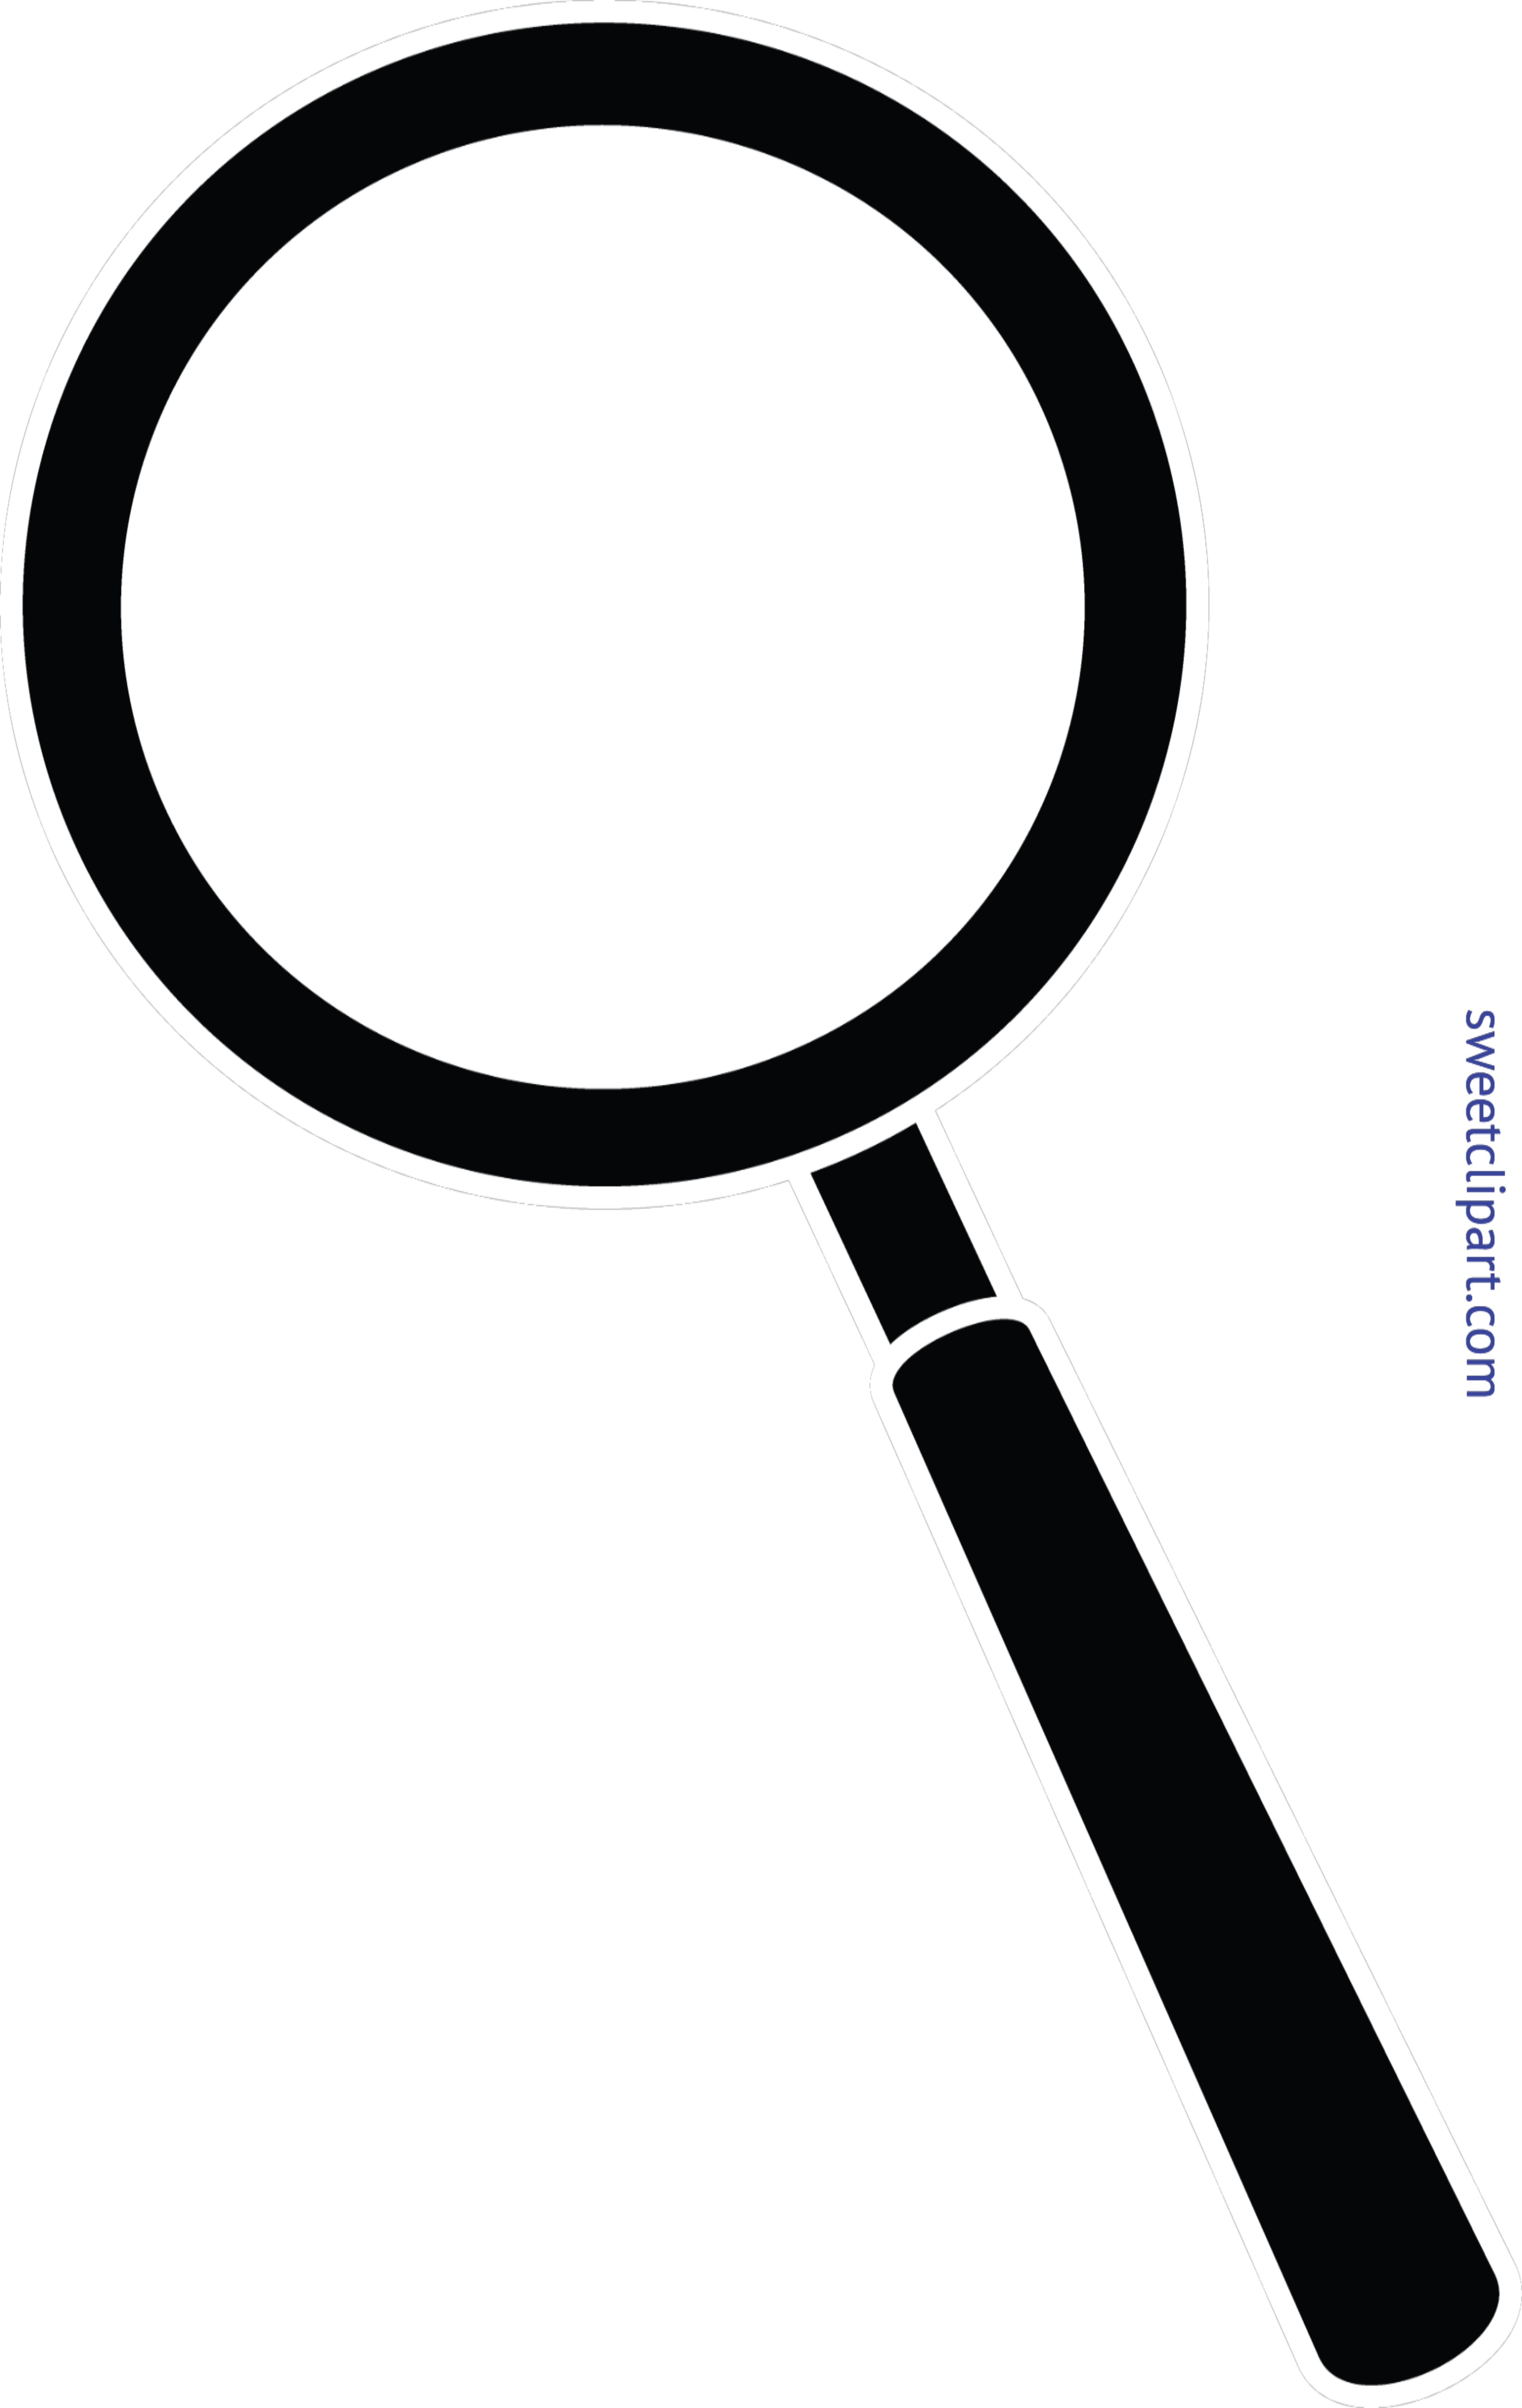 Magnifying glass and book clipart graphic black and white stock Magnifying Glass Black Clip Art - Sweet Clip Art graphic black and white stock